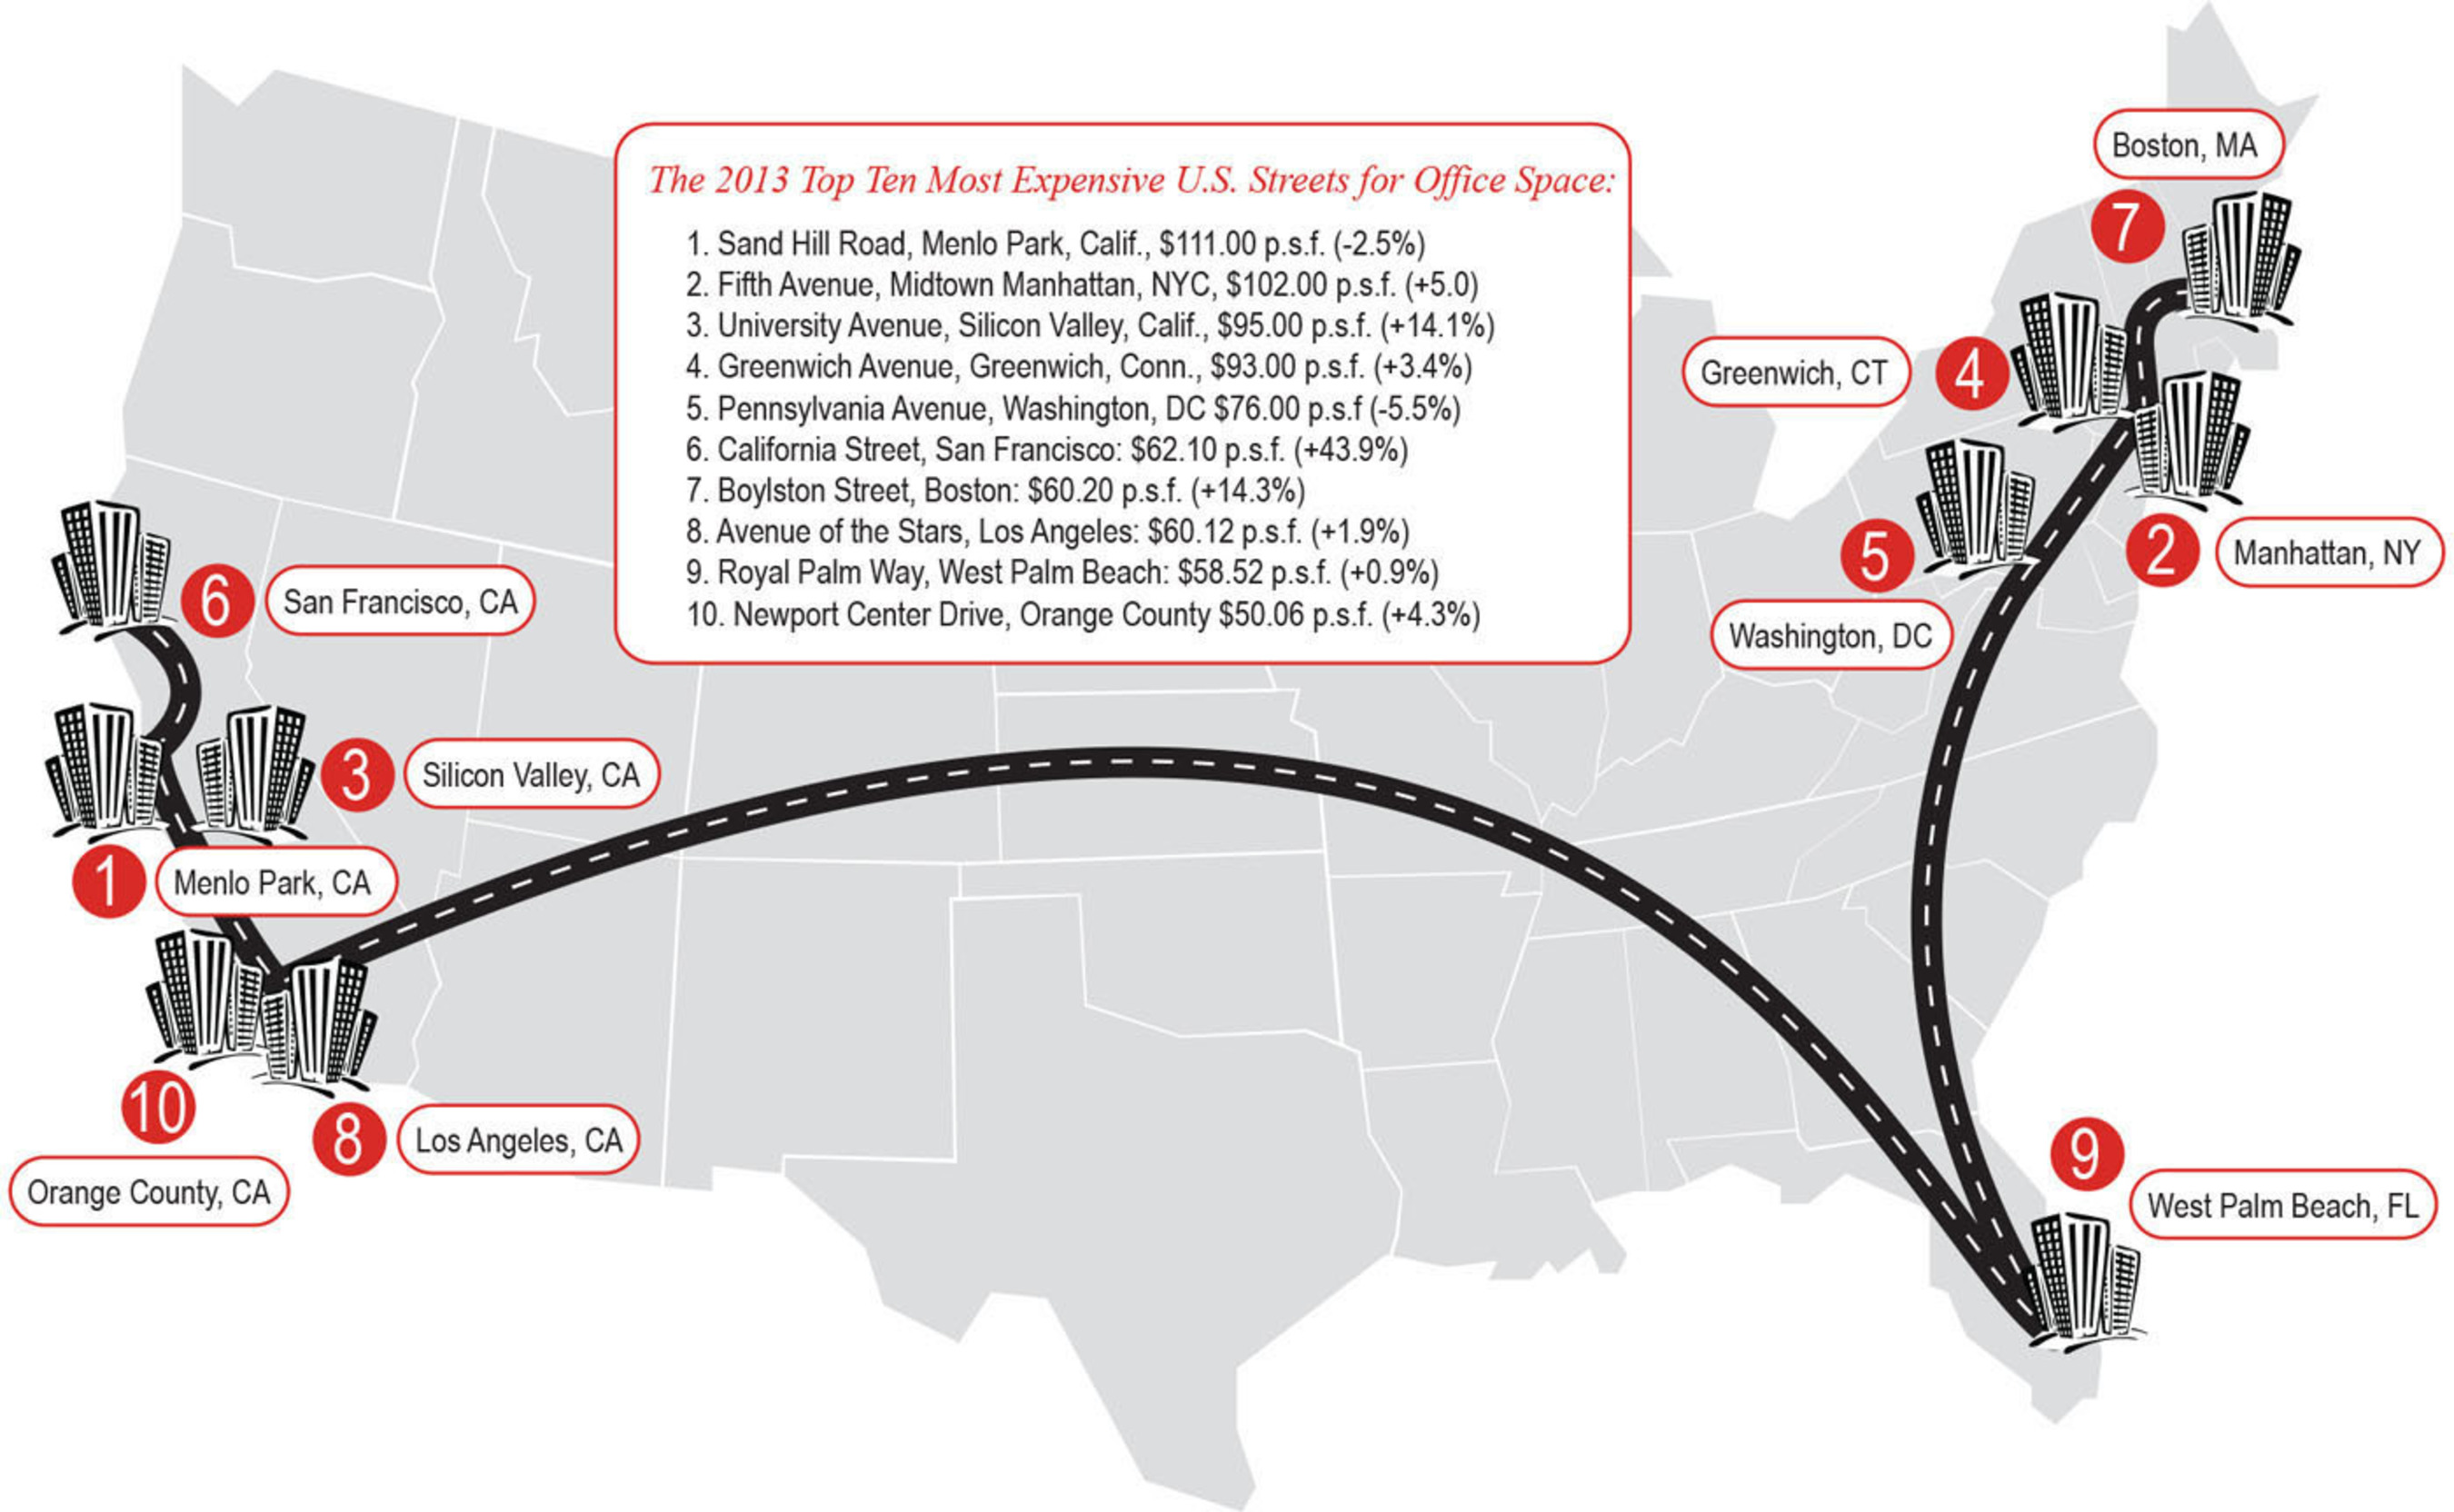 Jones Lang LaSalle's 2013 Top Ten Most Expensive U.S. Streets for Office Space.  (PRNewsFoto/Jones Lang LaSalle)